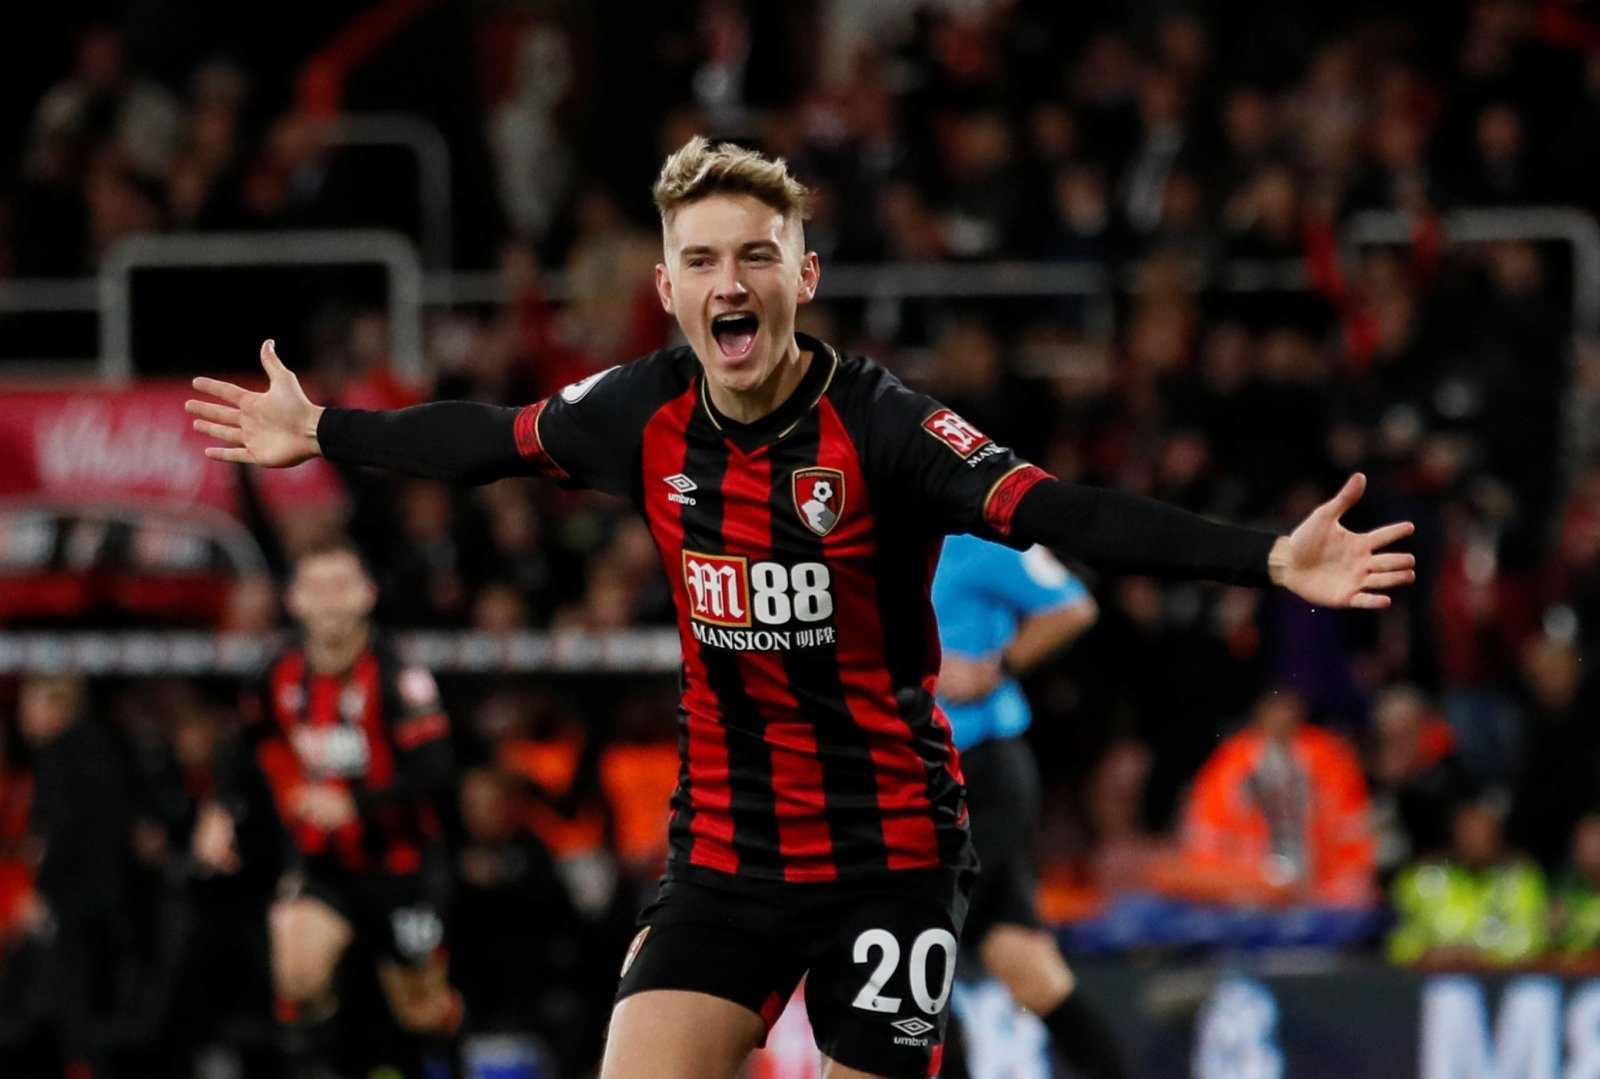 This Bournemouth star has to be in contention to win young player of the year